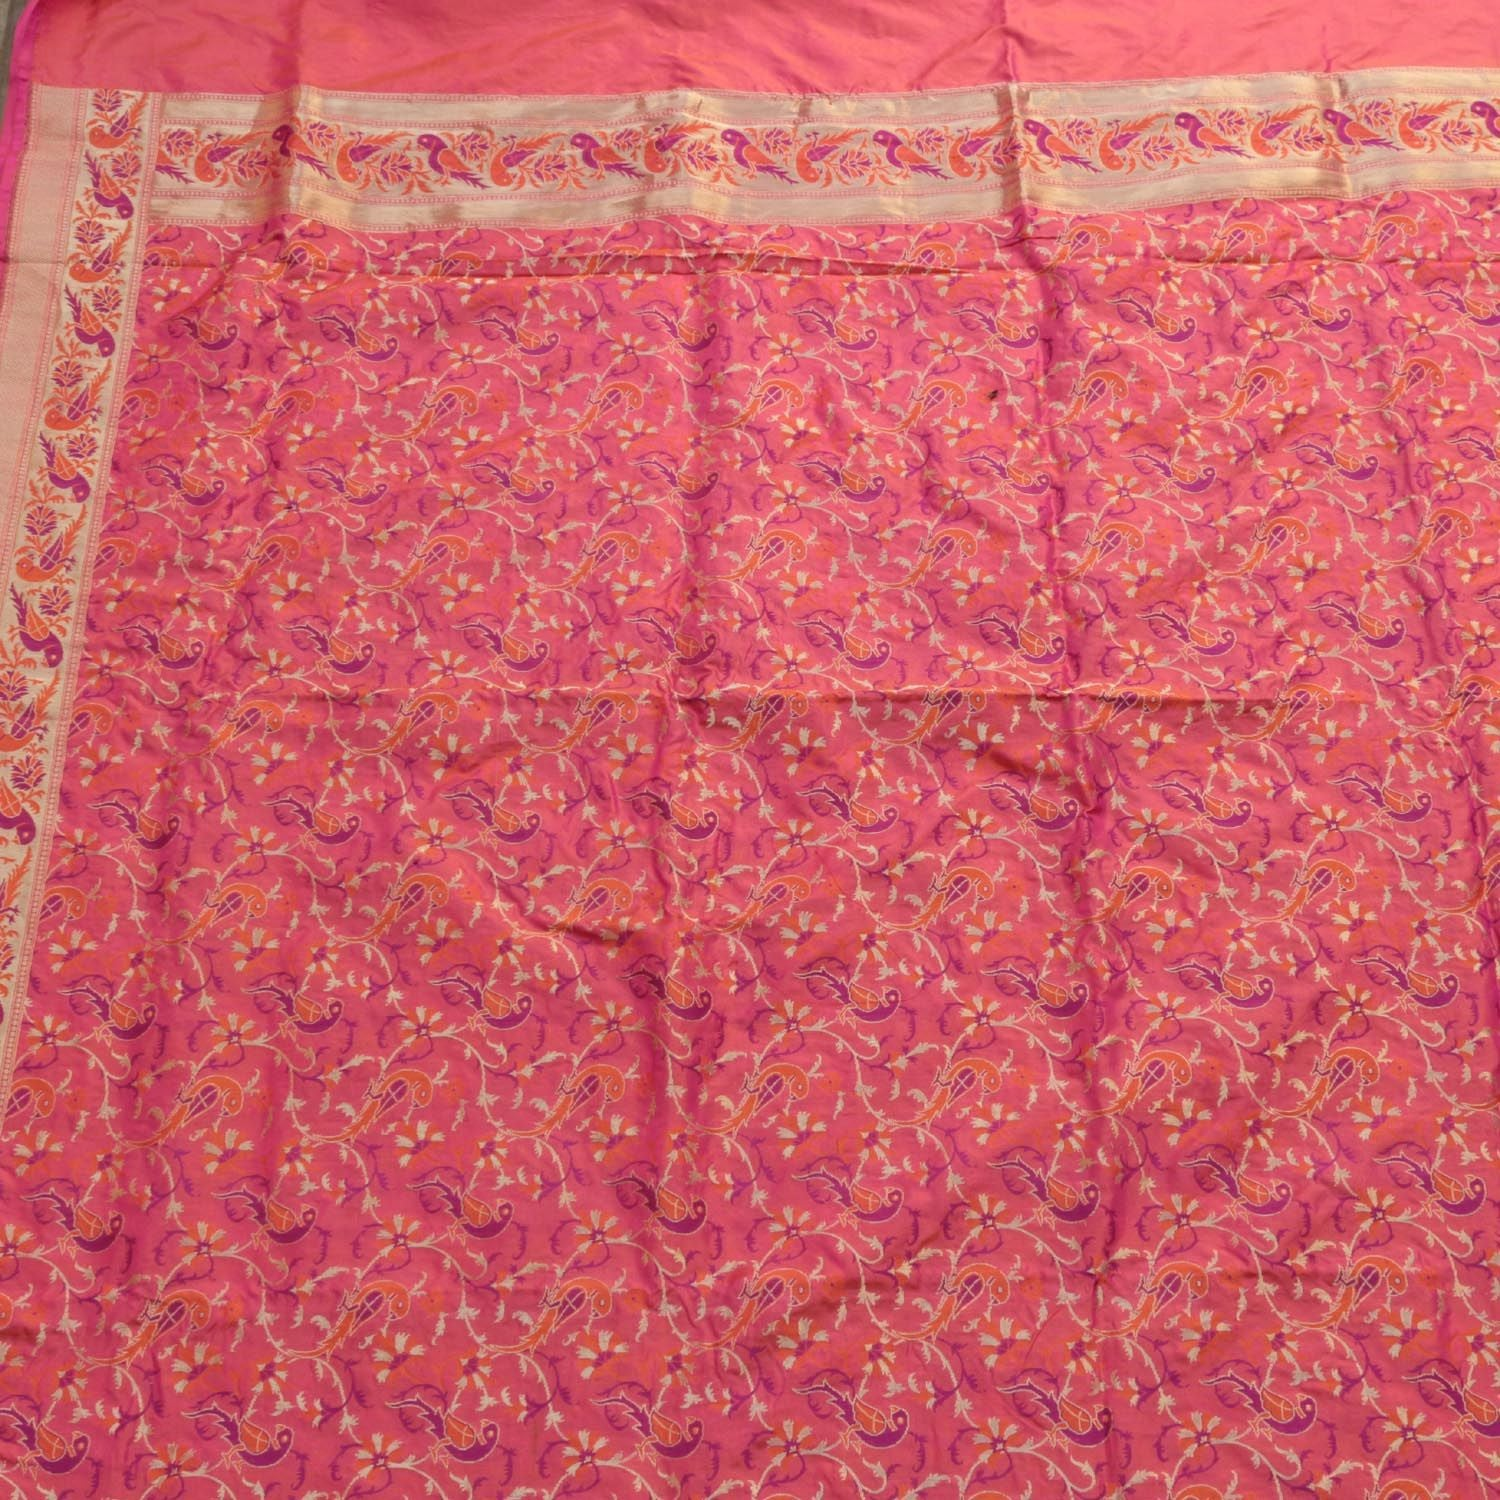 Indian Pink-Orange Pure Katan Silk Banarasi Handloom Dupatta - Tilfi - 2